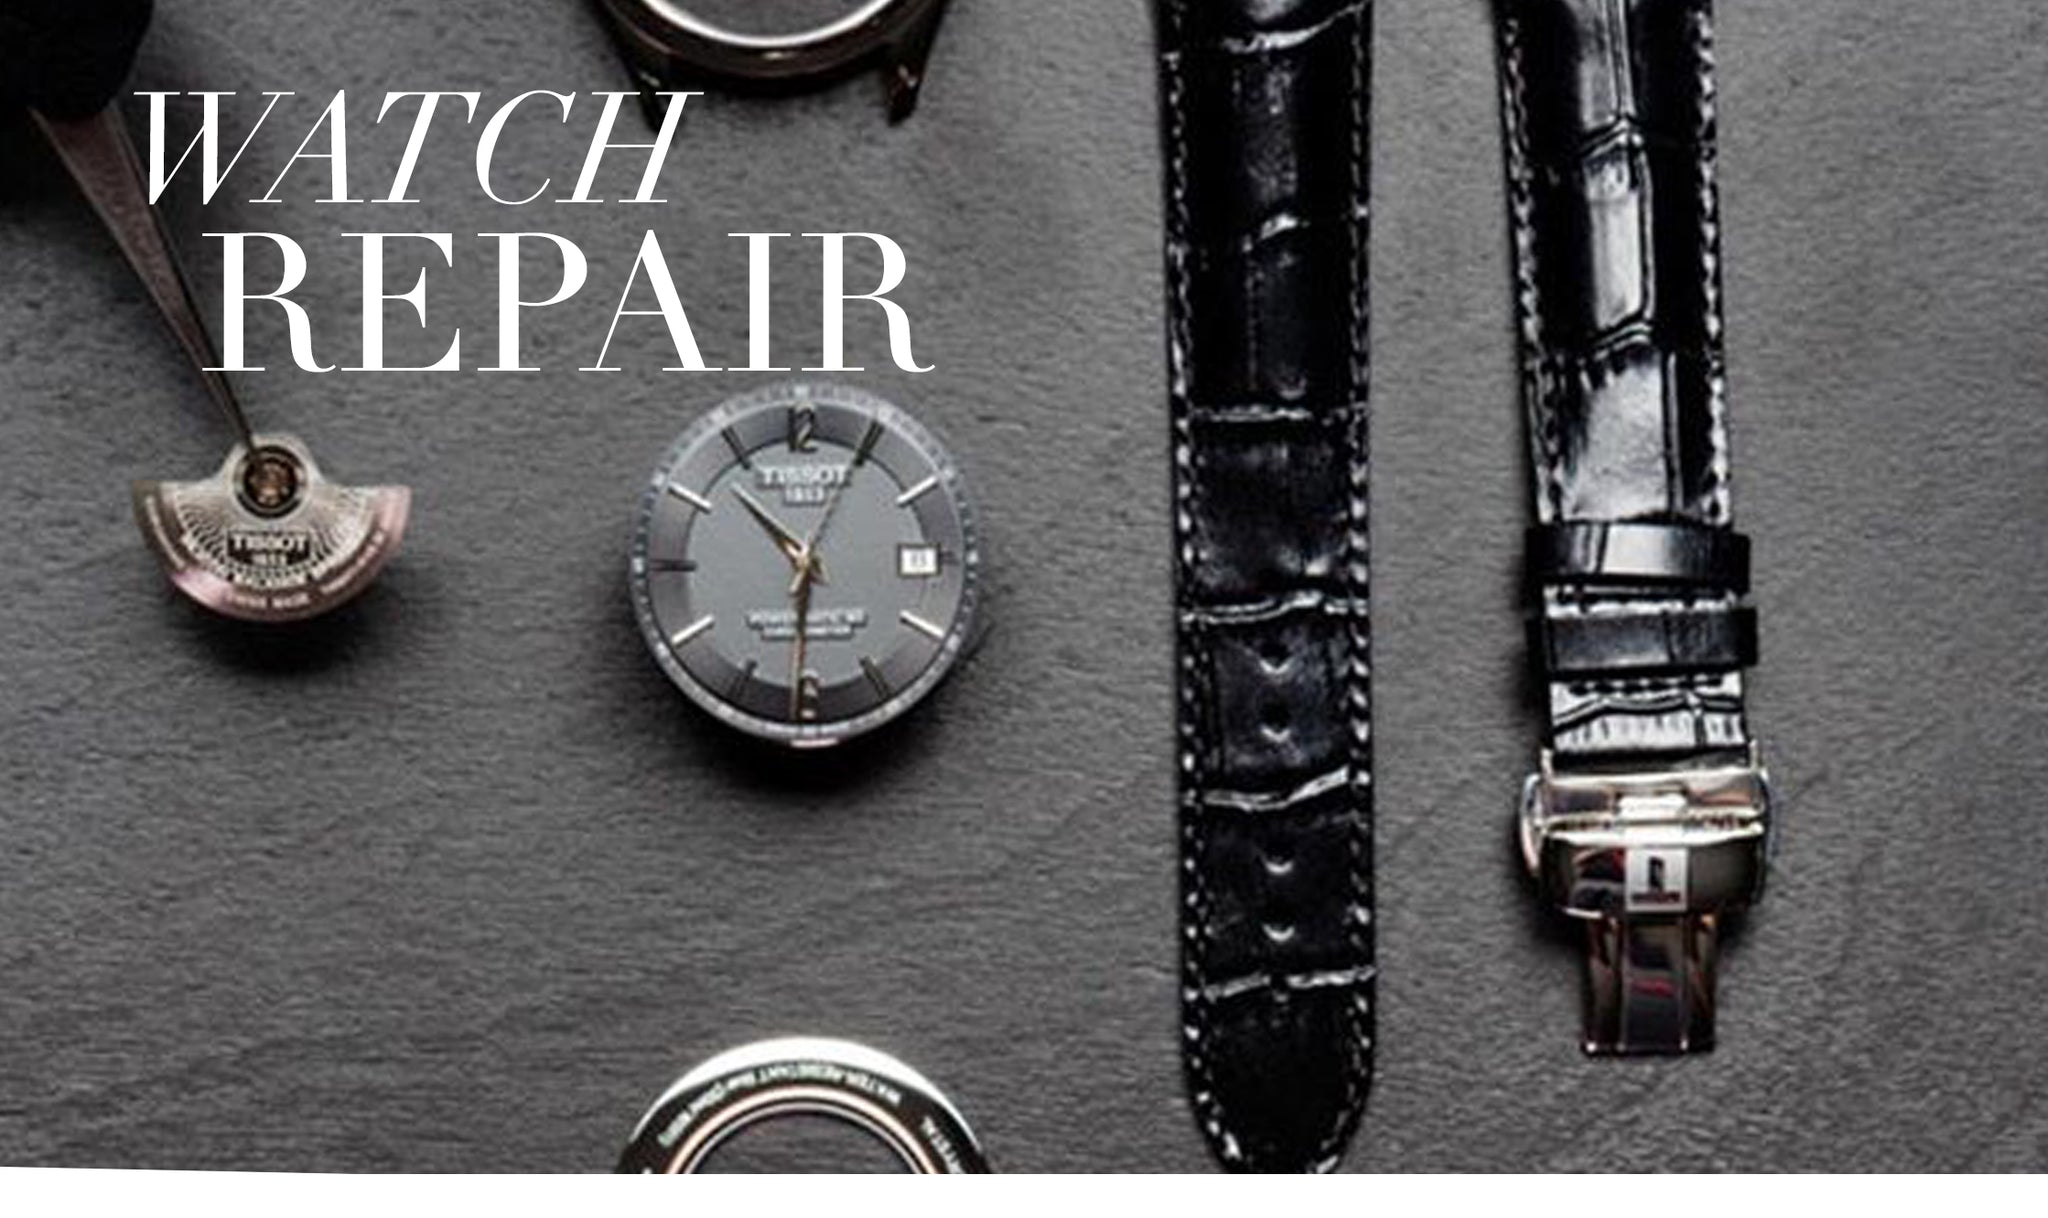 Watch Repair J Brooks